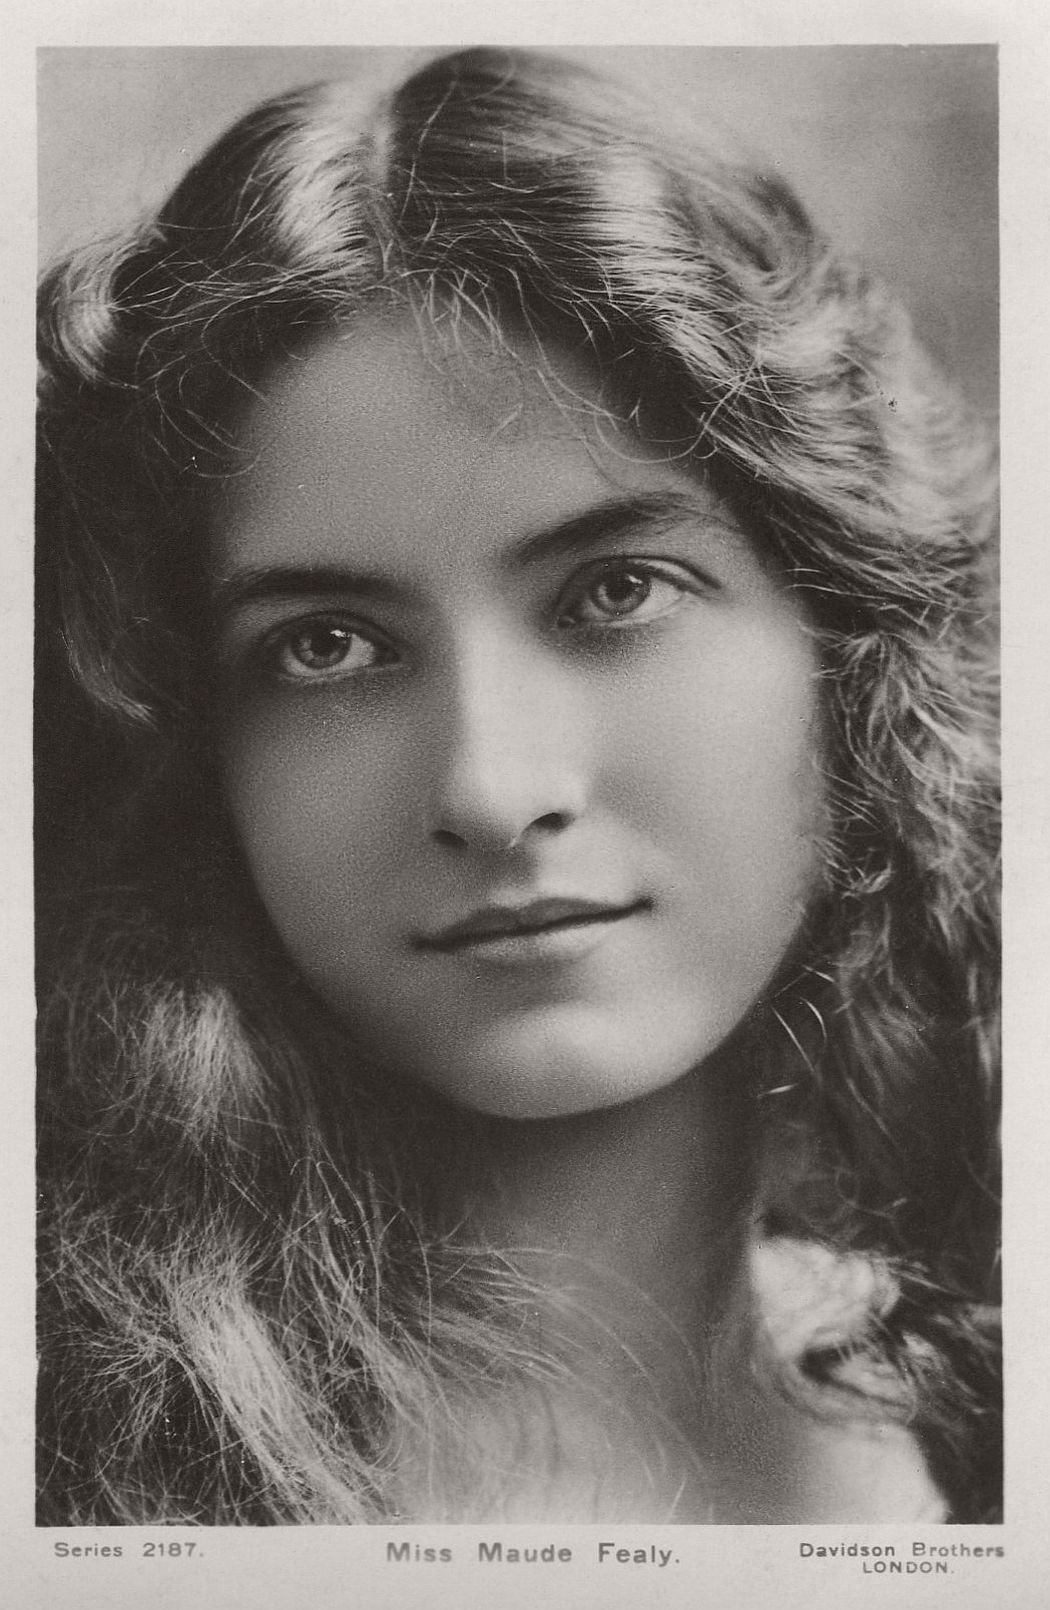 vintage-postcard-of-actress-miss-maude-fealy-1900s-early-xx-century-02